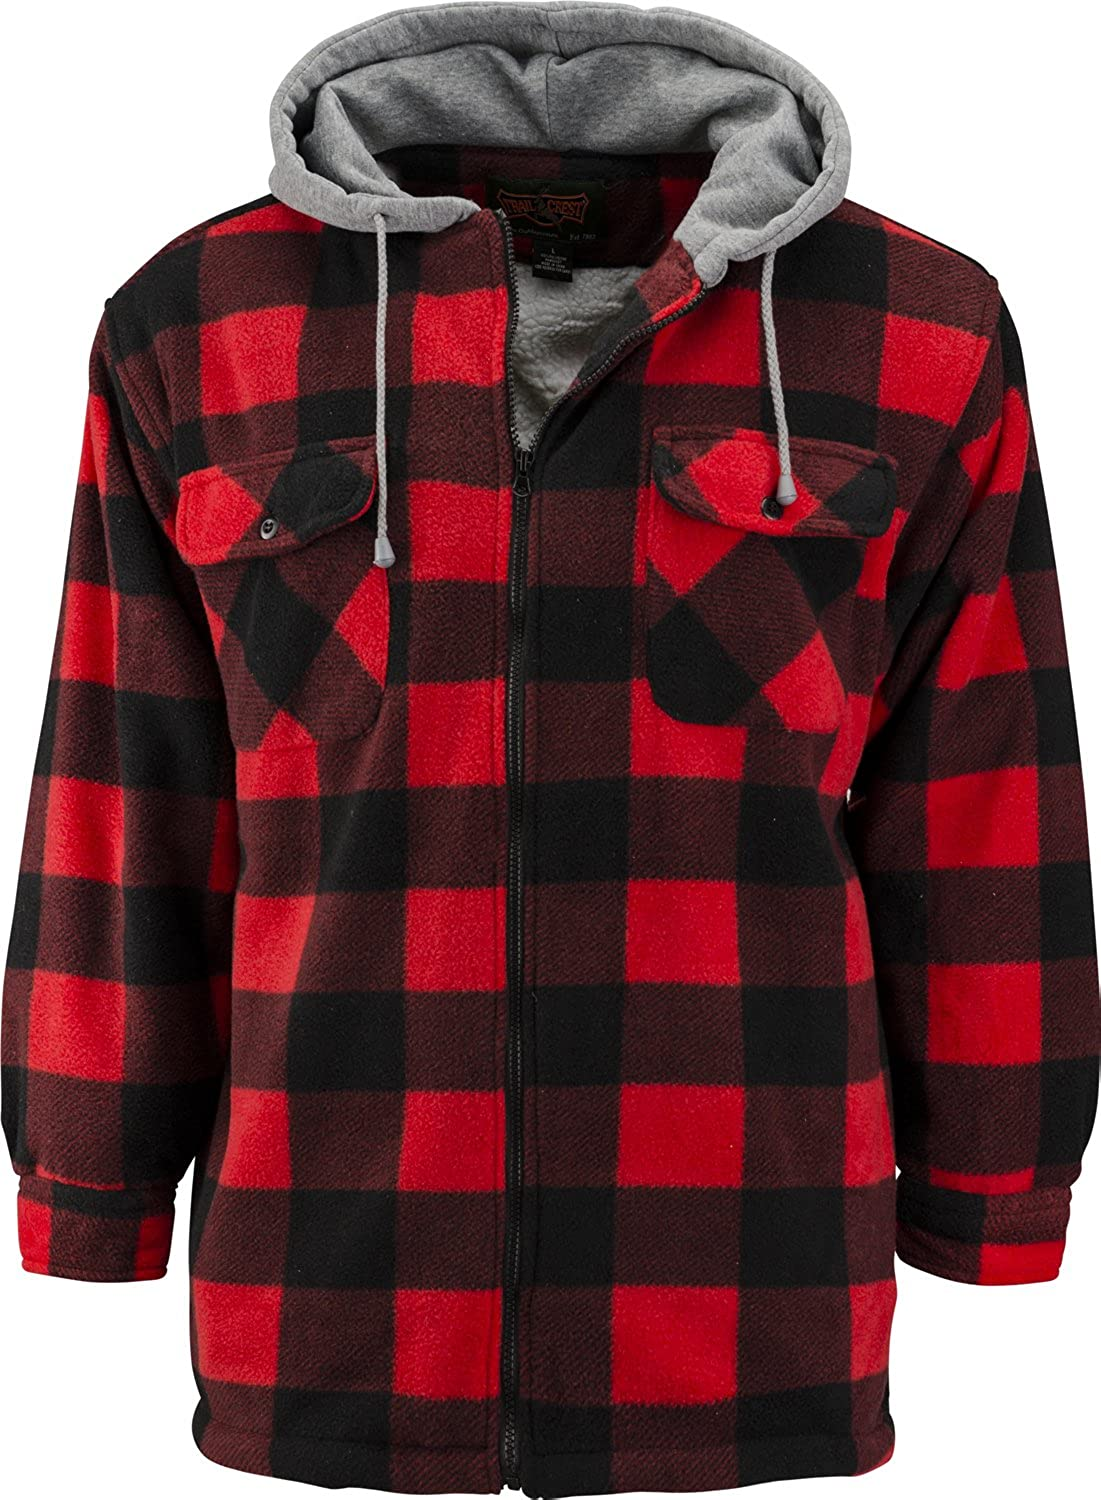 Trail Crest Mens Buffalo Plaid Classic Sherpa Lined Zip Up Hooded Shirt Jacket 268612